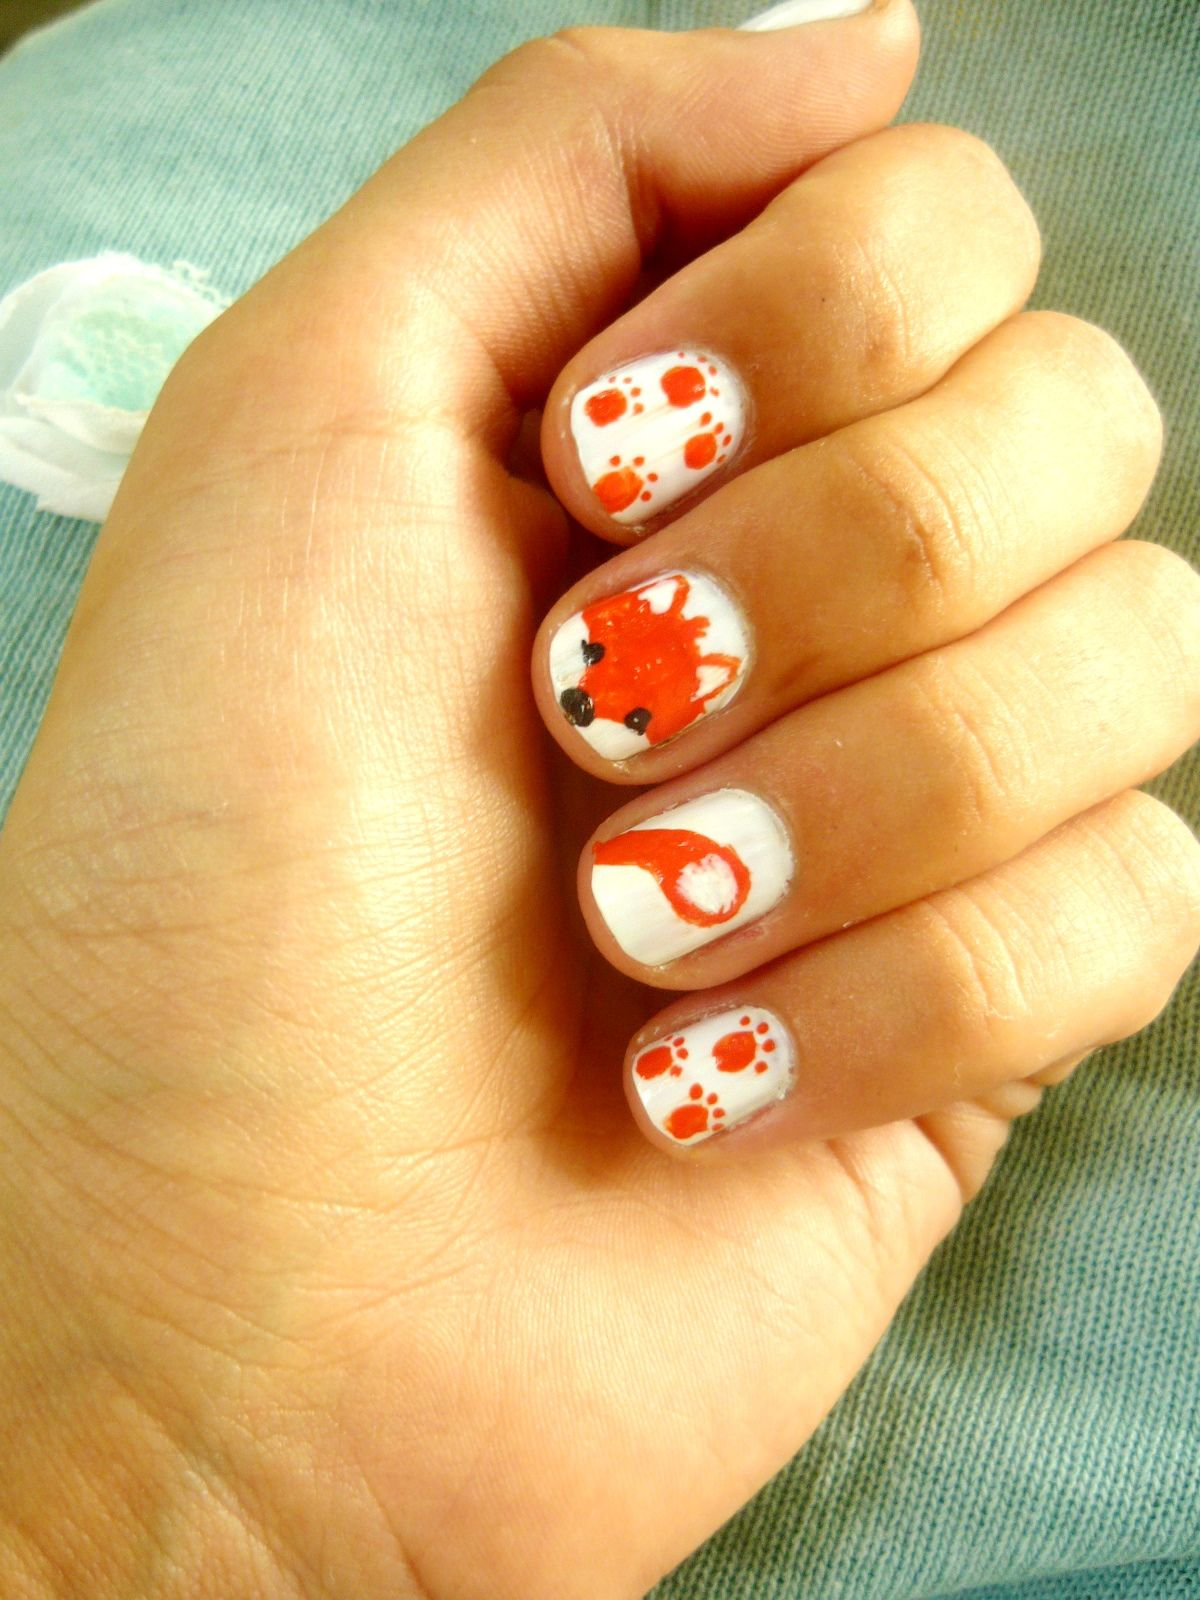 foxy nails. Pinterest inspired. | nails | nails | Pinterest | Manicure